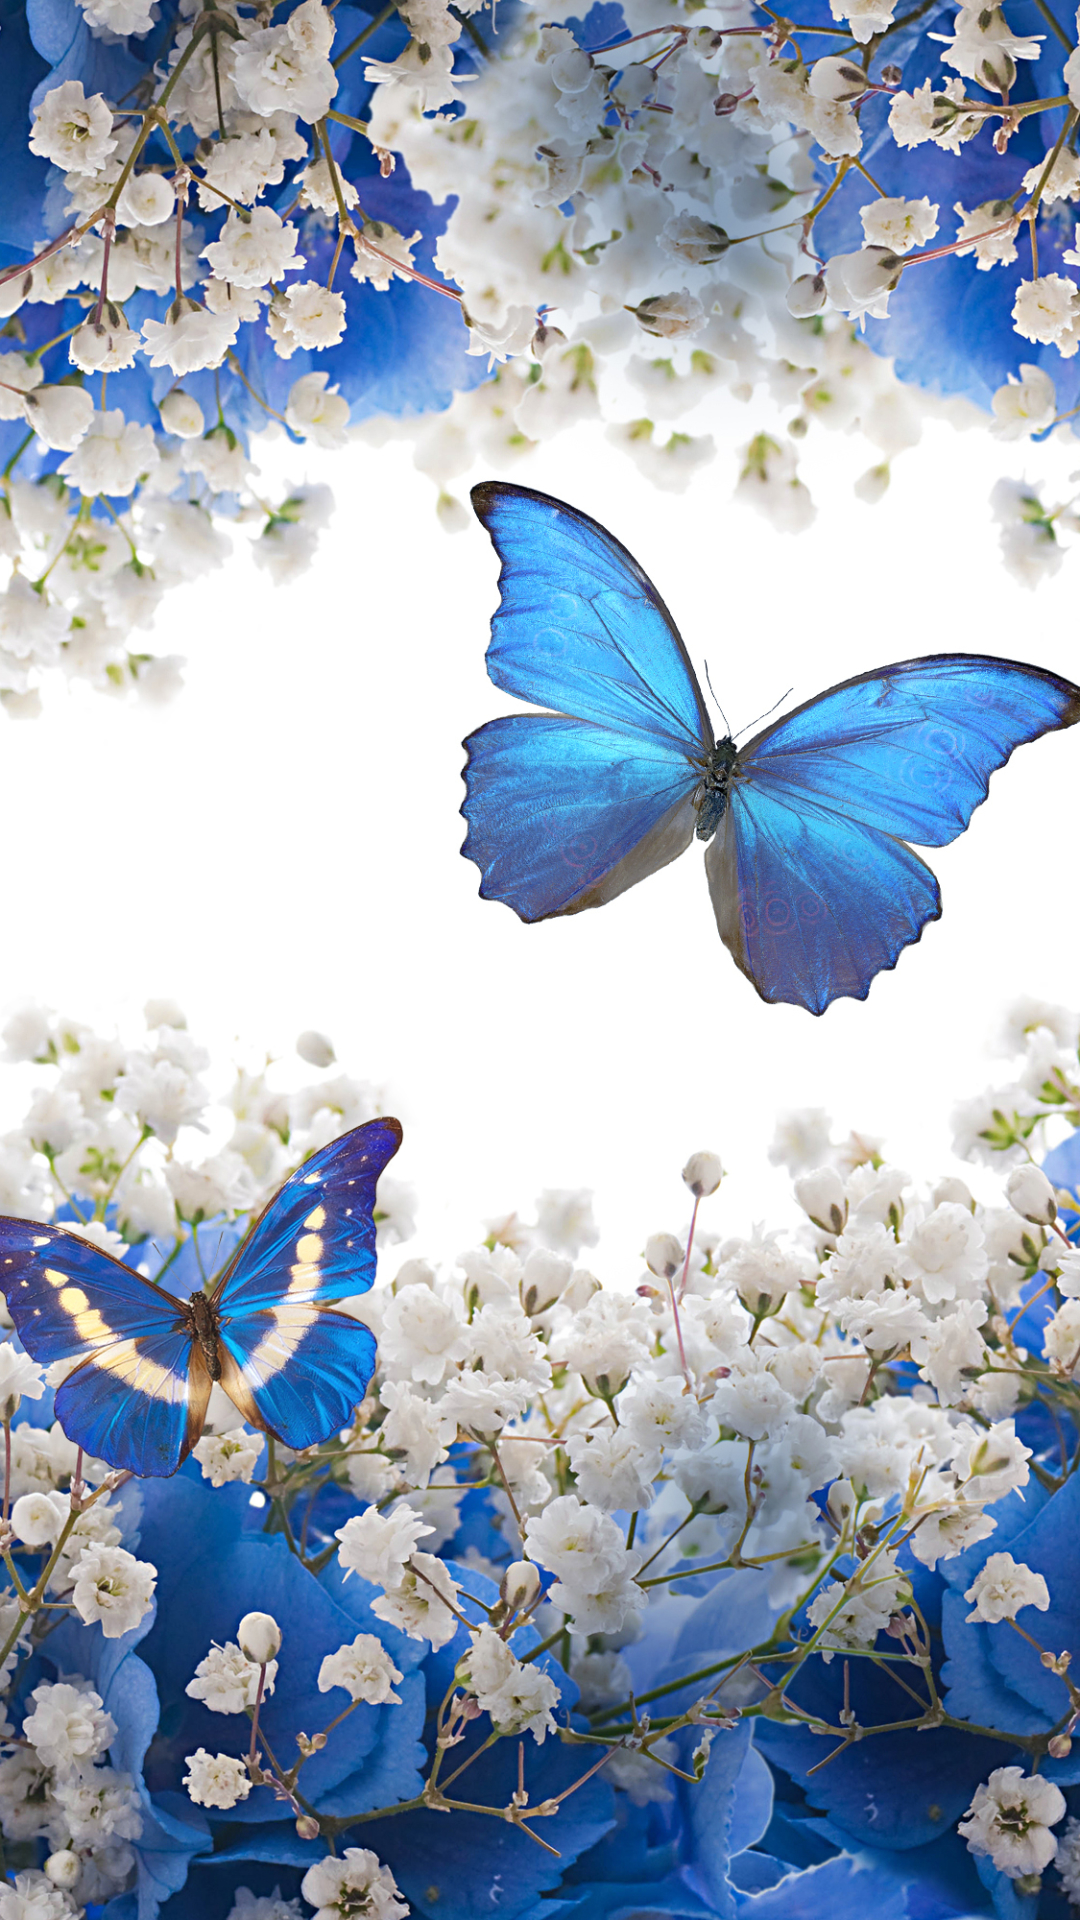 Butterfly Mobile Wallpapers Wallpaper Cave